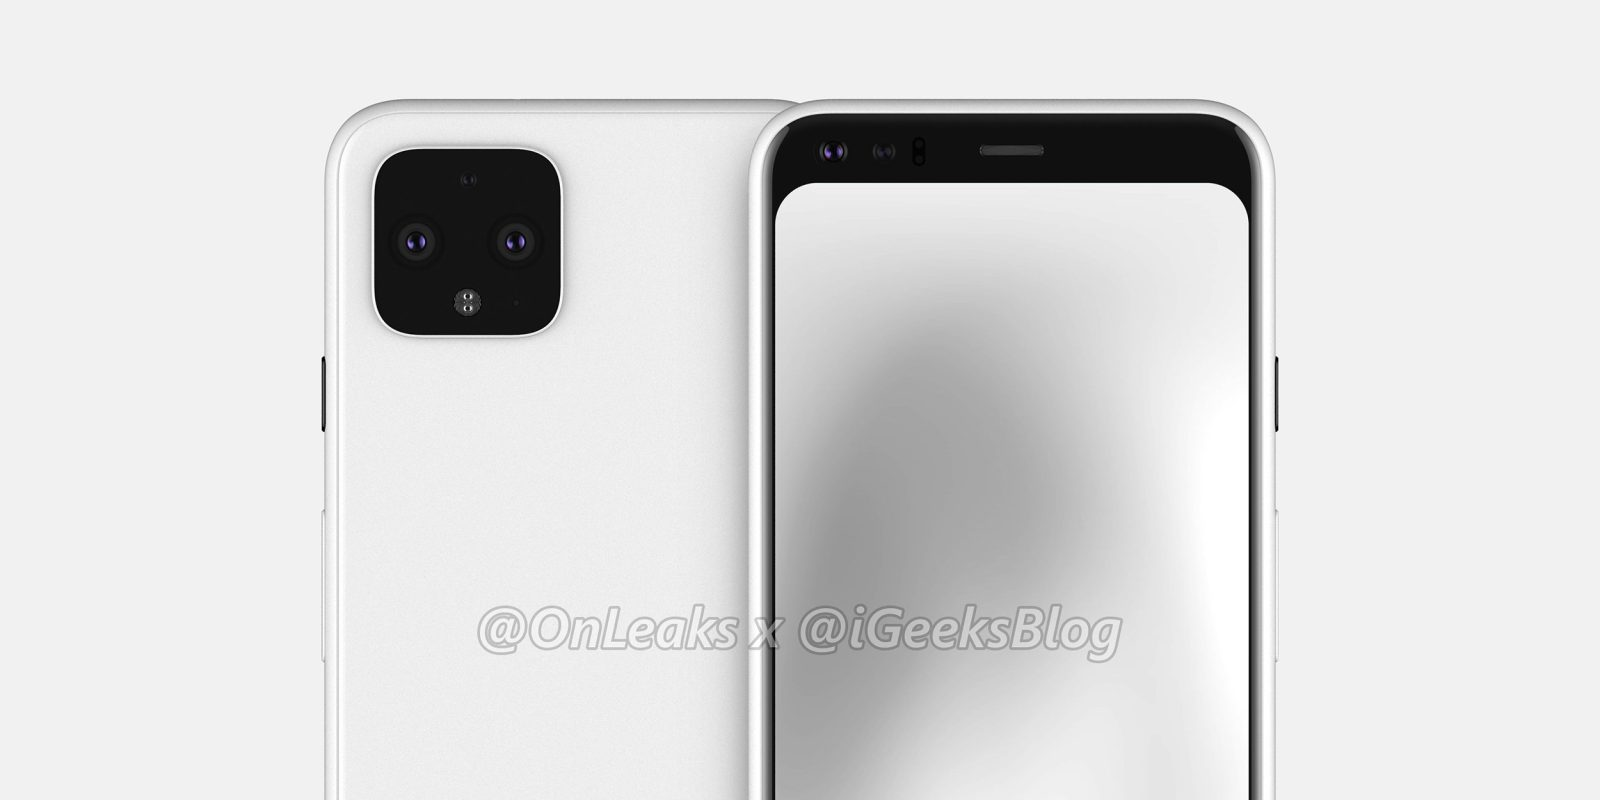 Top Stories: Pixel 4 bezels, Pie for Nvidia Shield, more - 9to5Google